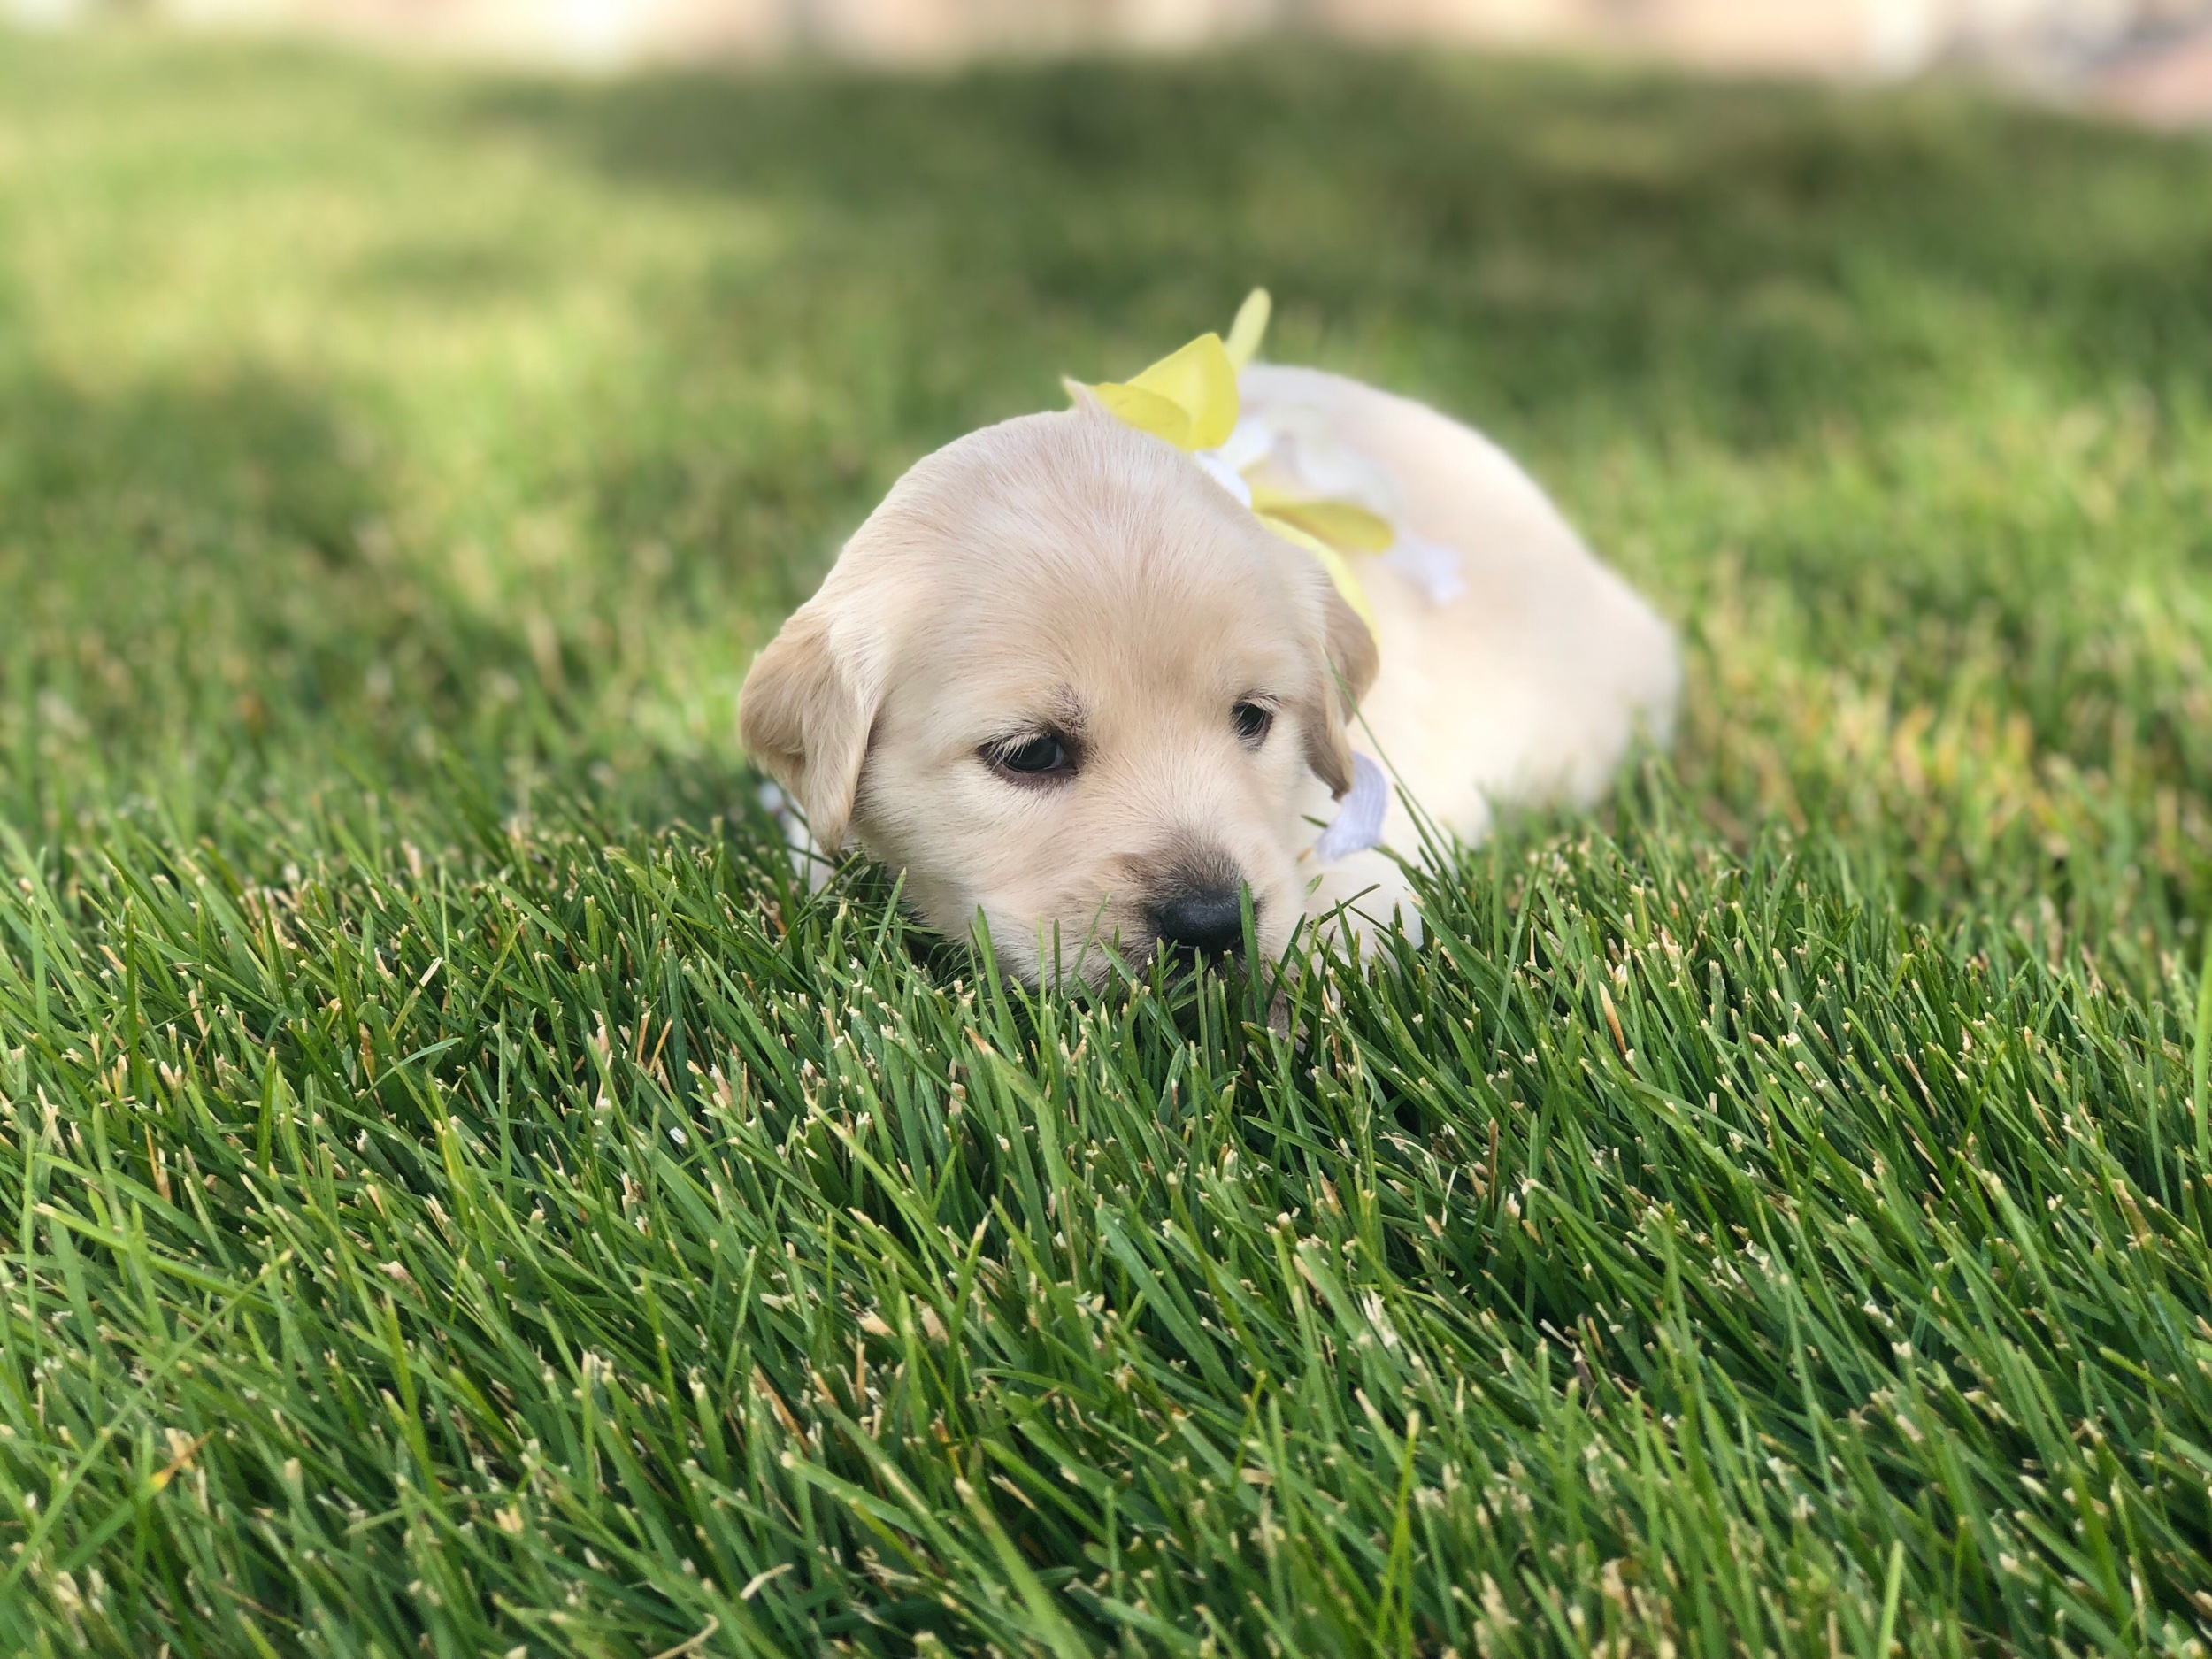 This is Elyse a Cream sister with a yellow bow. She has the classic Golden Retriever straight coat that will shed some. She weighs 3 lbs 13.9 oz.